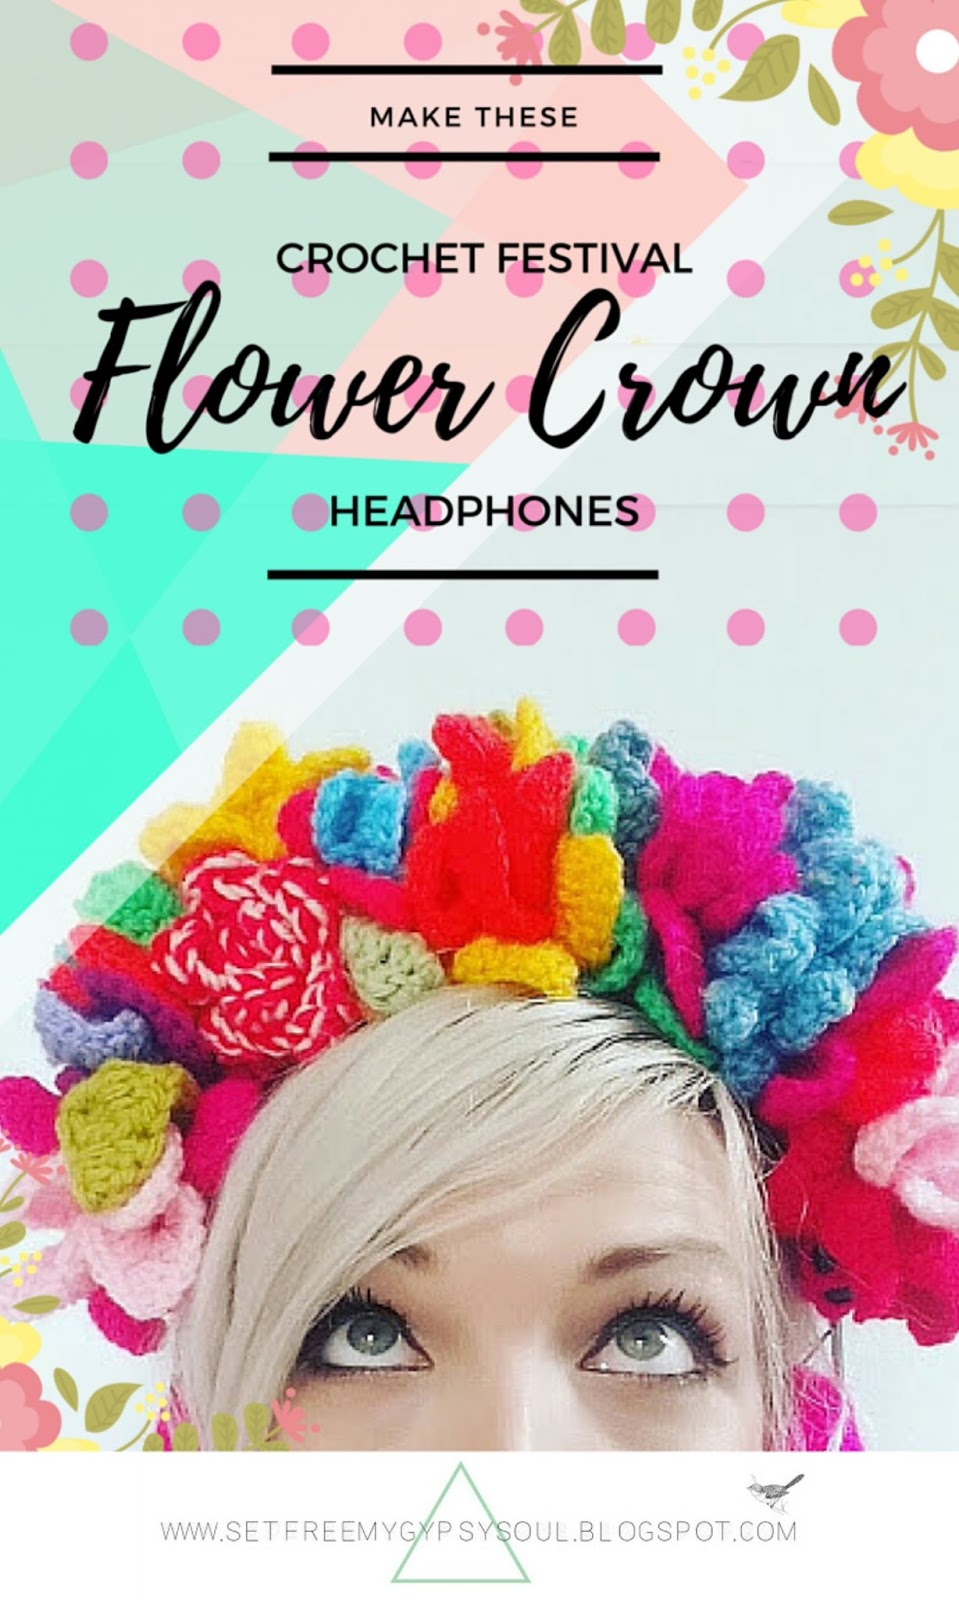 flower crown crochet heaphones earphones bright boho bohemian hippie fashion